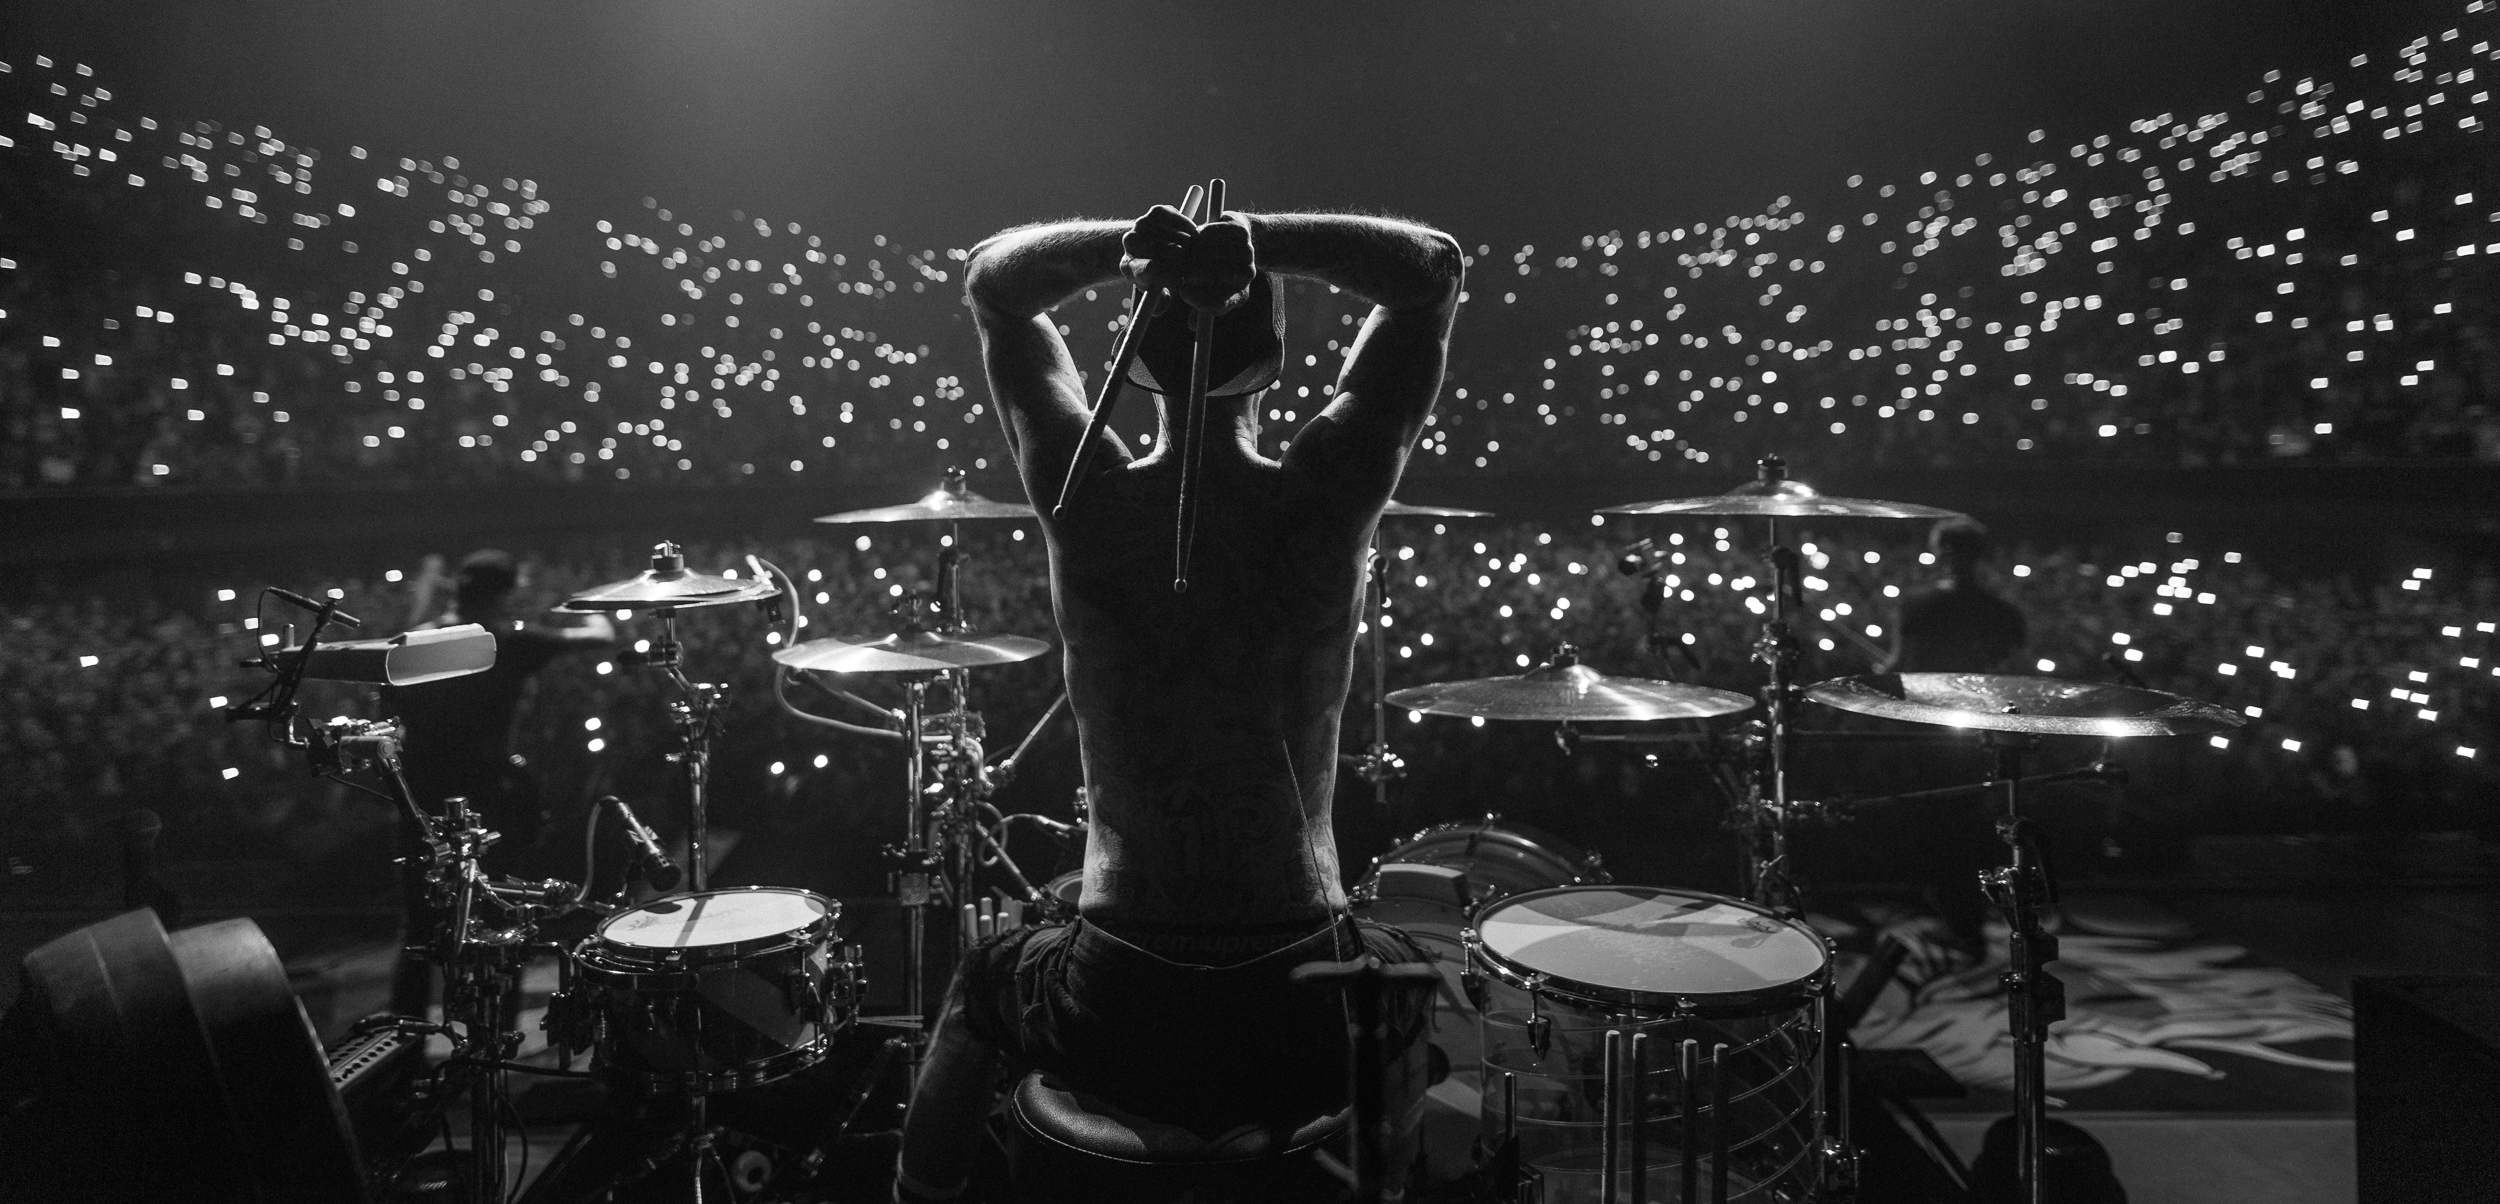 Travis Barker of Blink-182 by Adam Elmakias